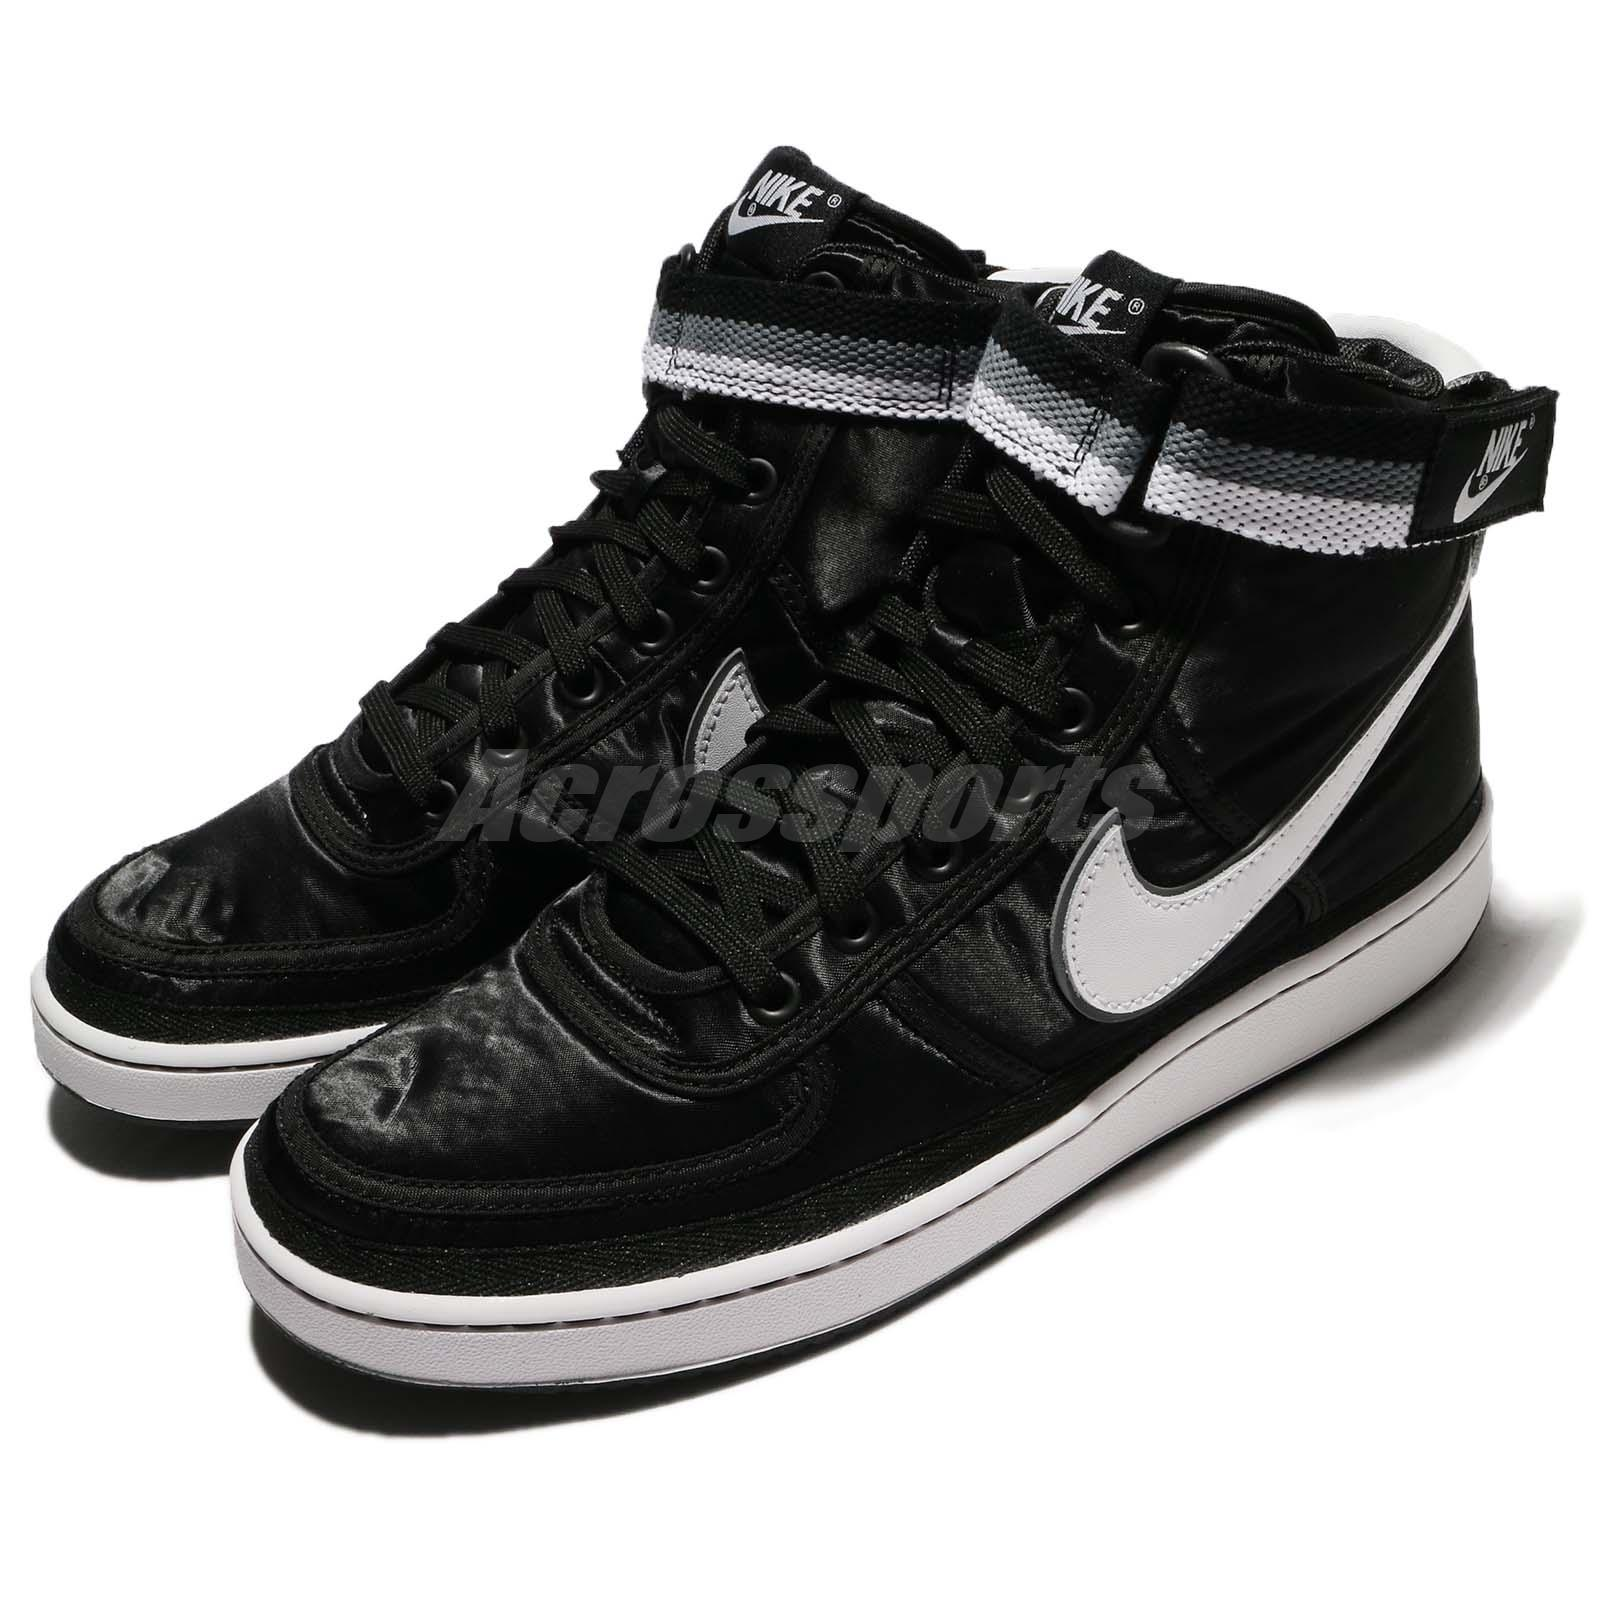 a571b3b8b88 Details about Nike Vandal High Supreme Black White Men Classic Shoes  Sneakers 318330-001